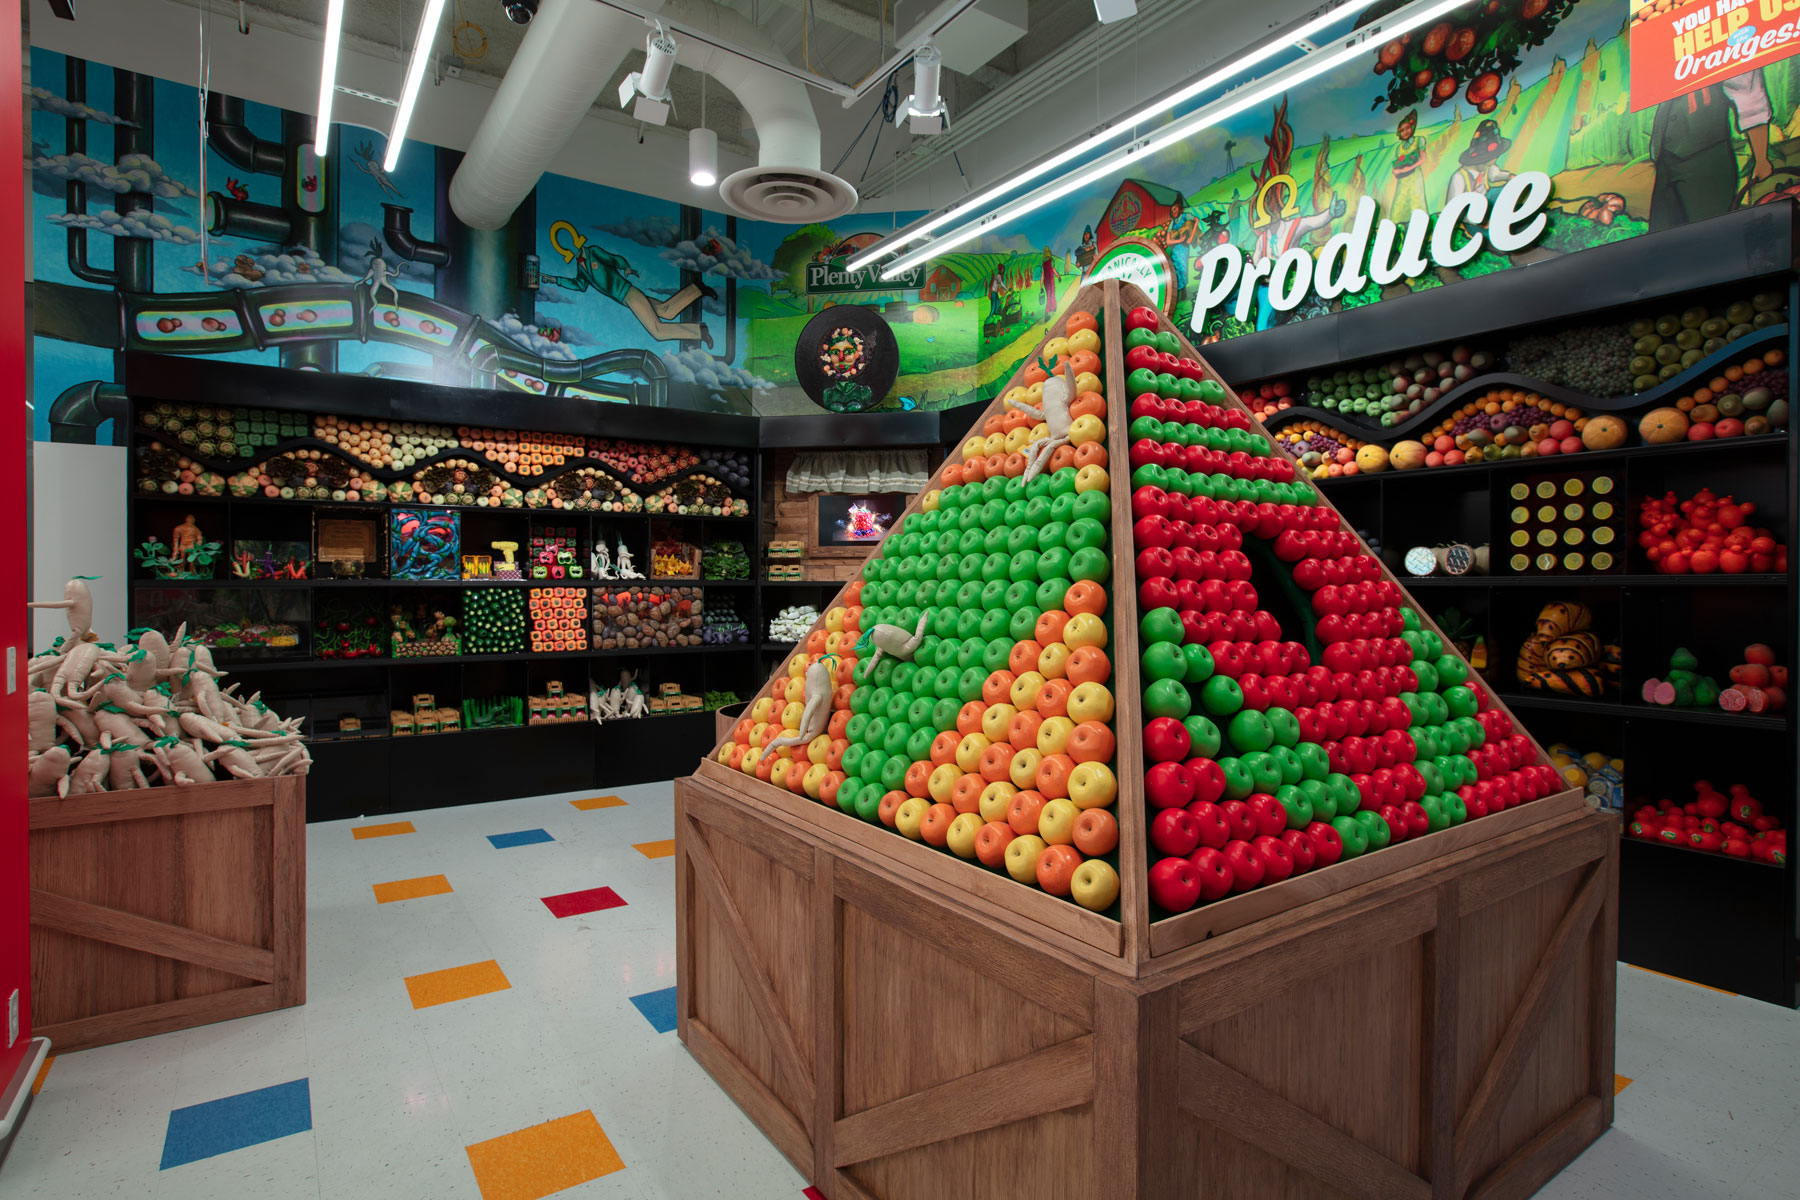 This Psychedelic Grocery Store Is an Immersive Art Experience in Las Vegas | Travel & Leisure